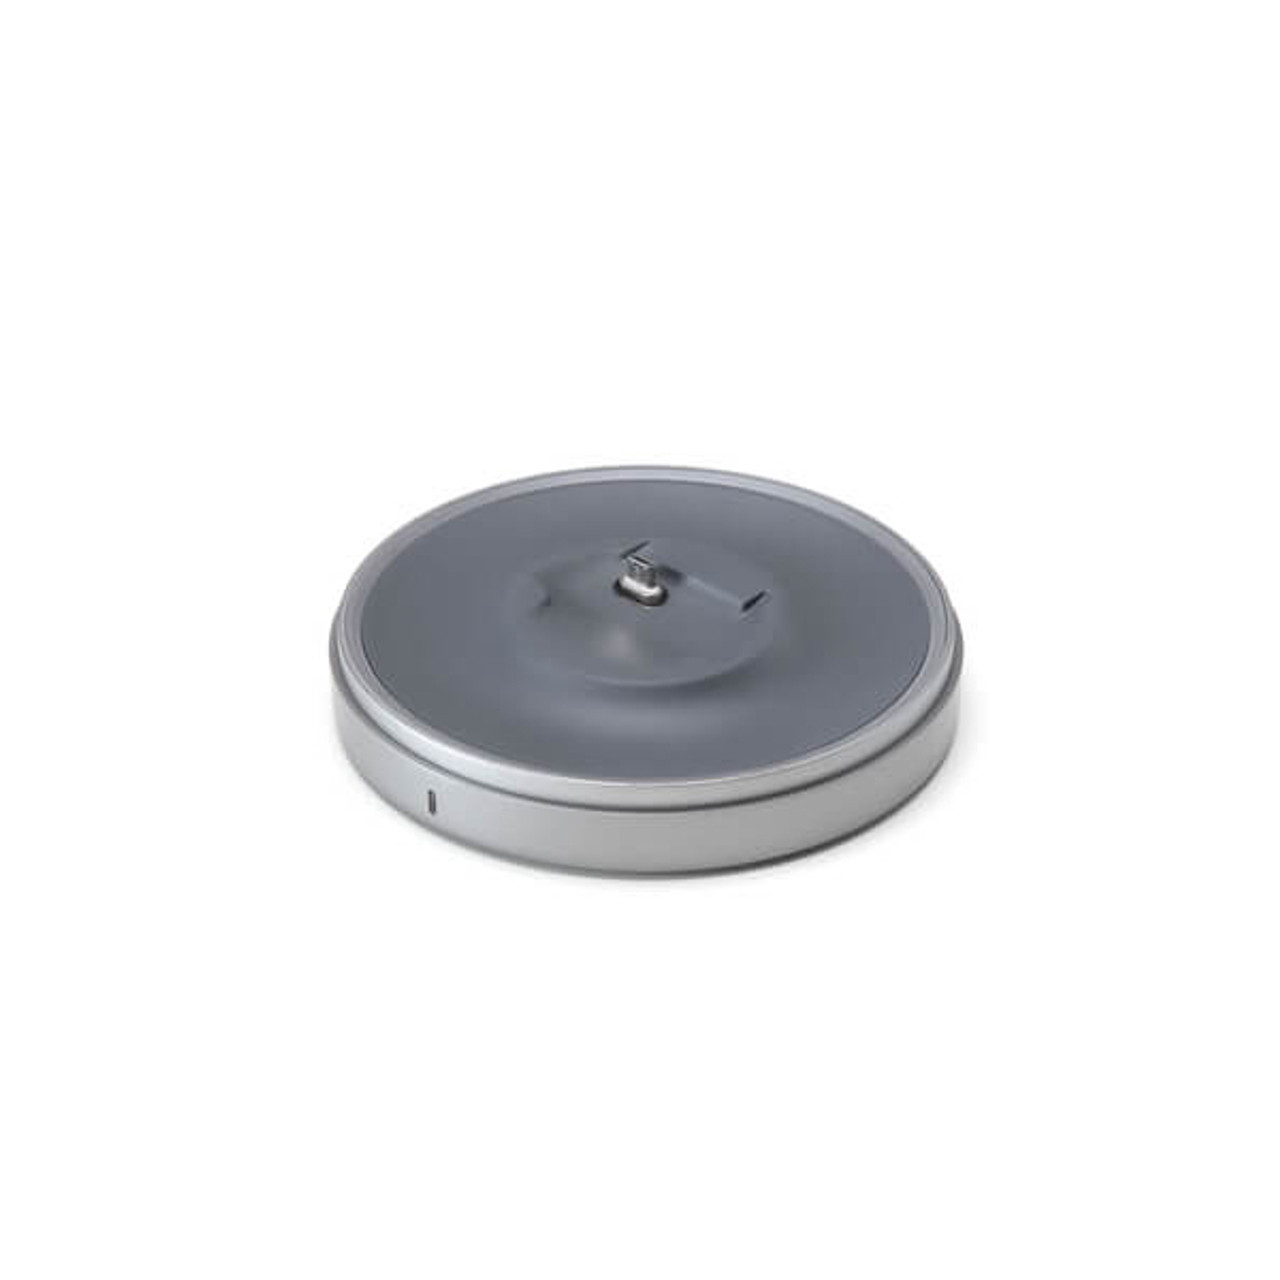 DJI Mavic Mini Charging Base